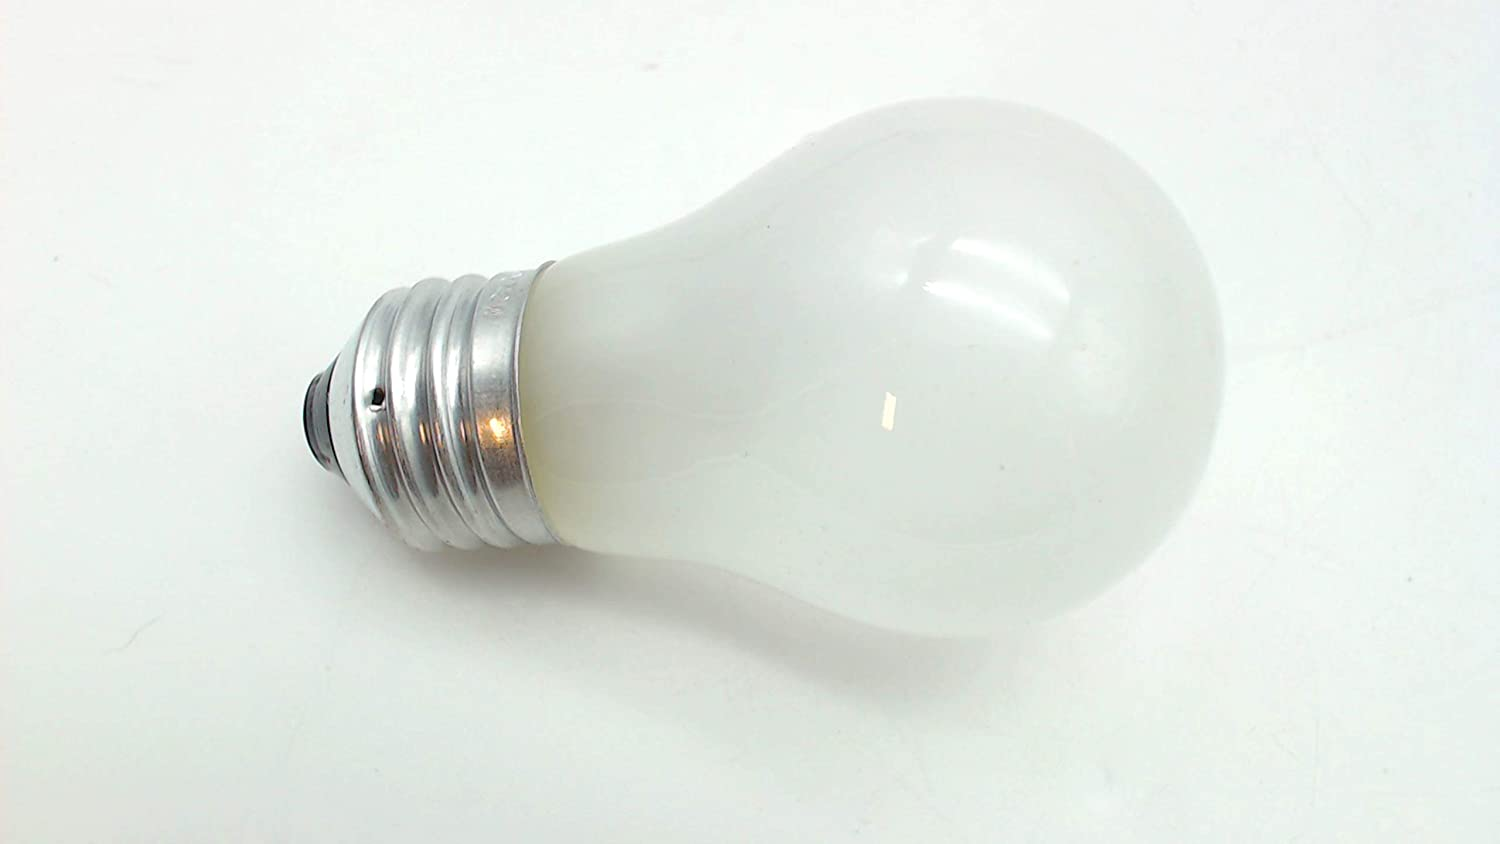 8009 Replacement Light Bulb 40 Watt Compatible With Whirlpool Refrigerators